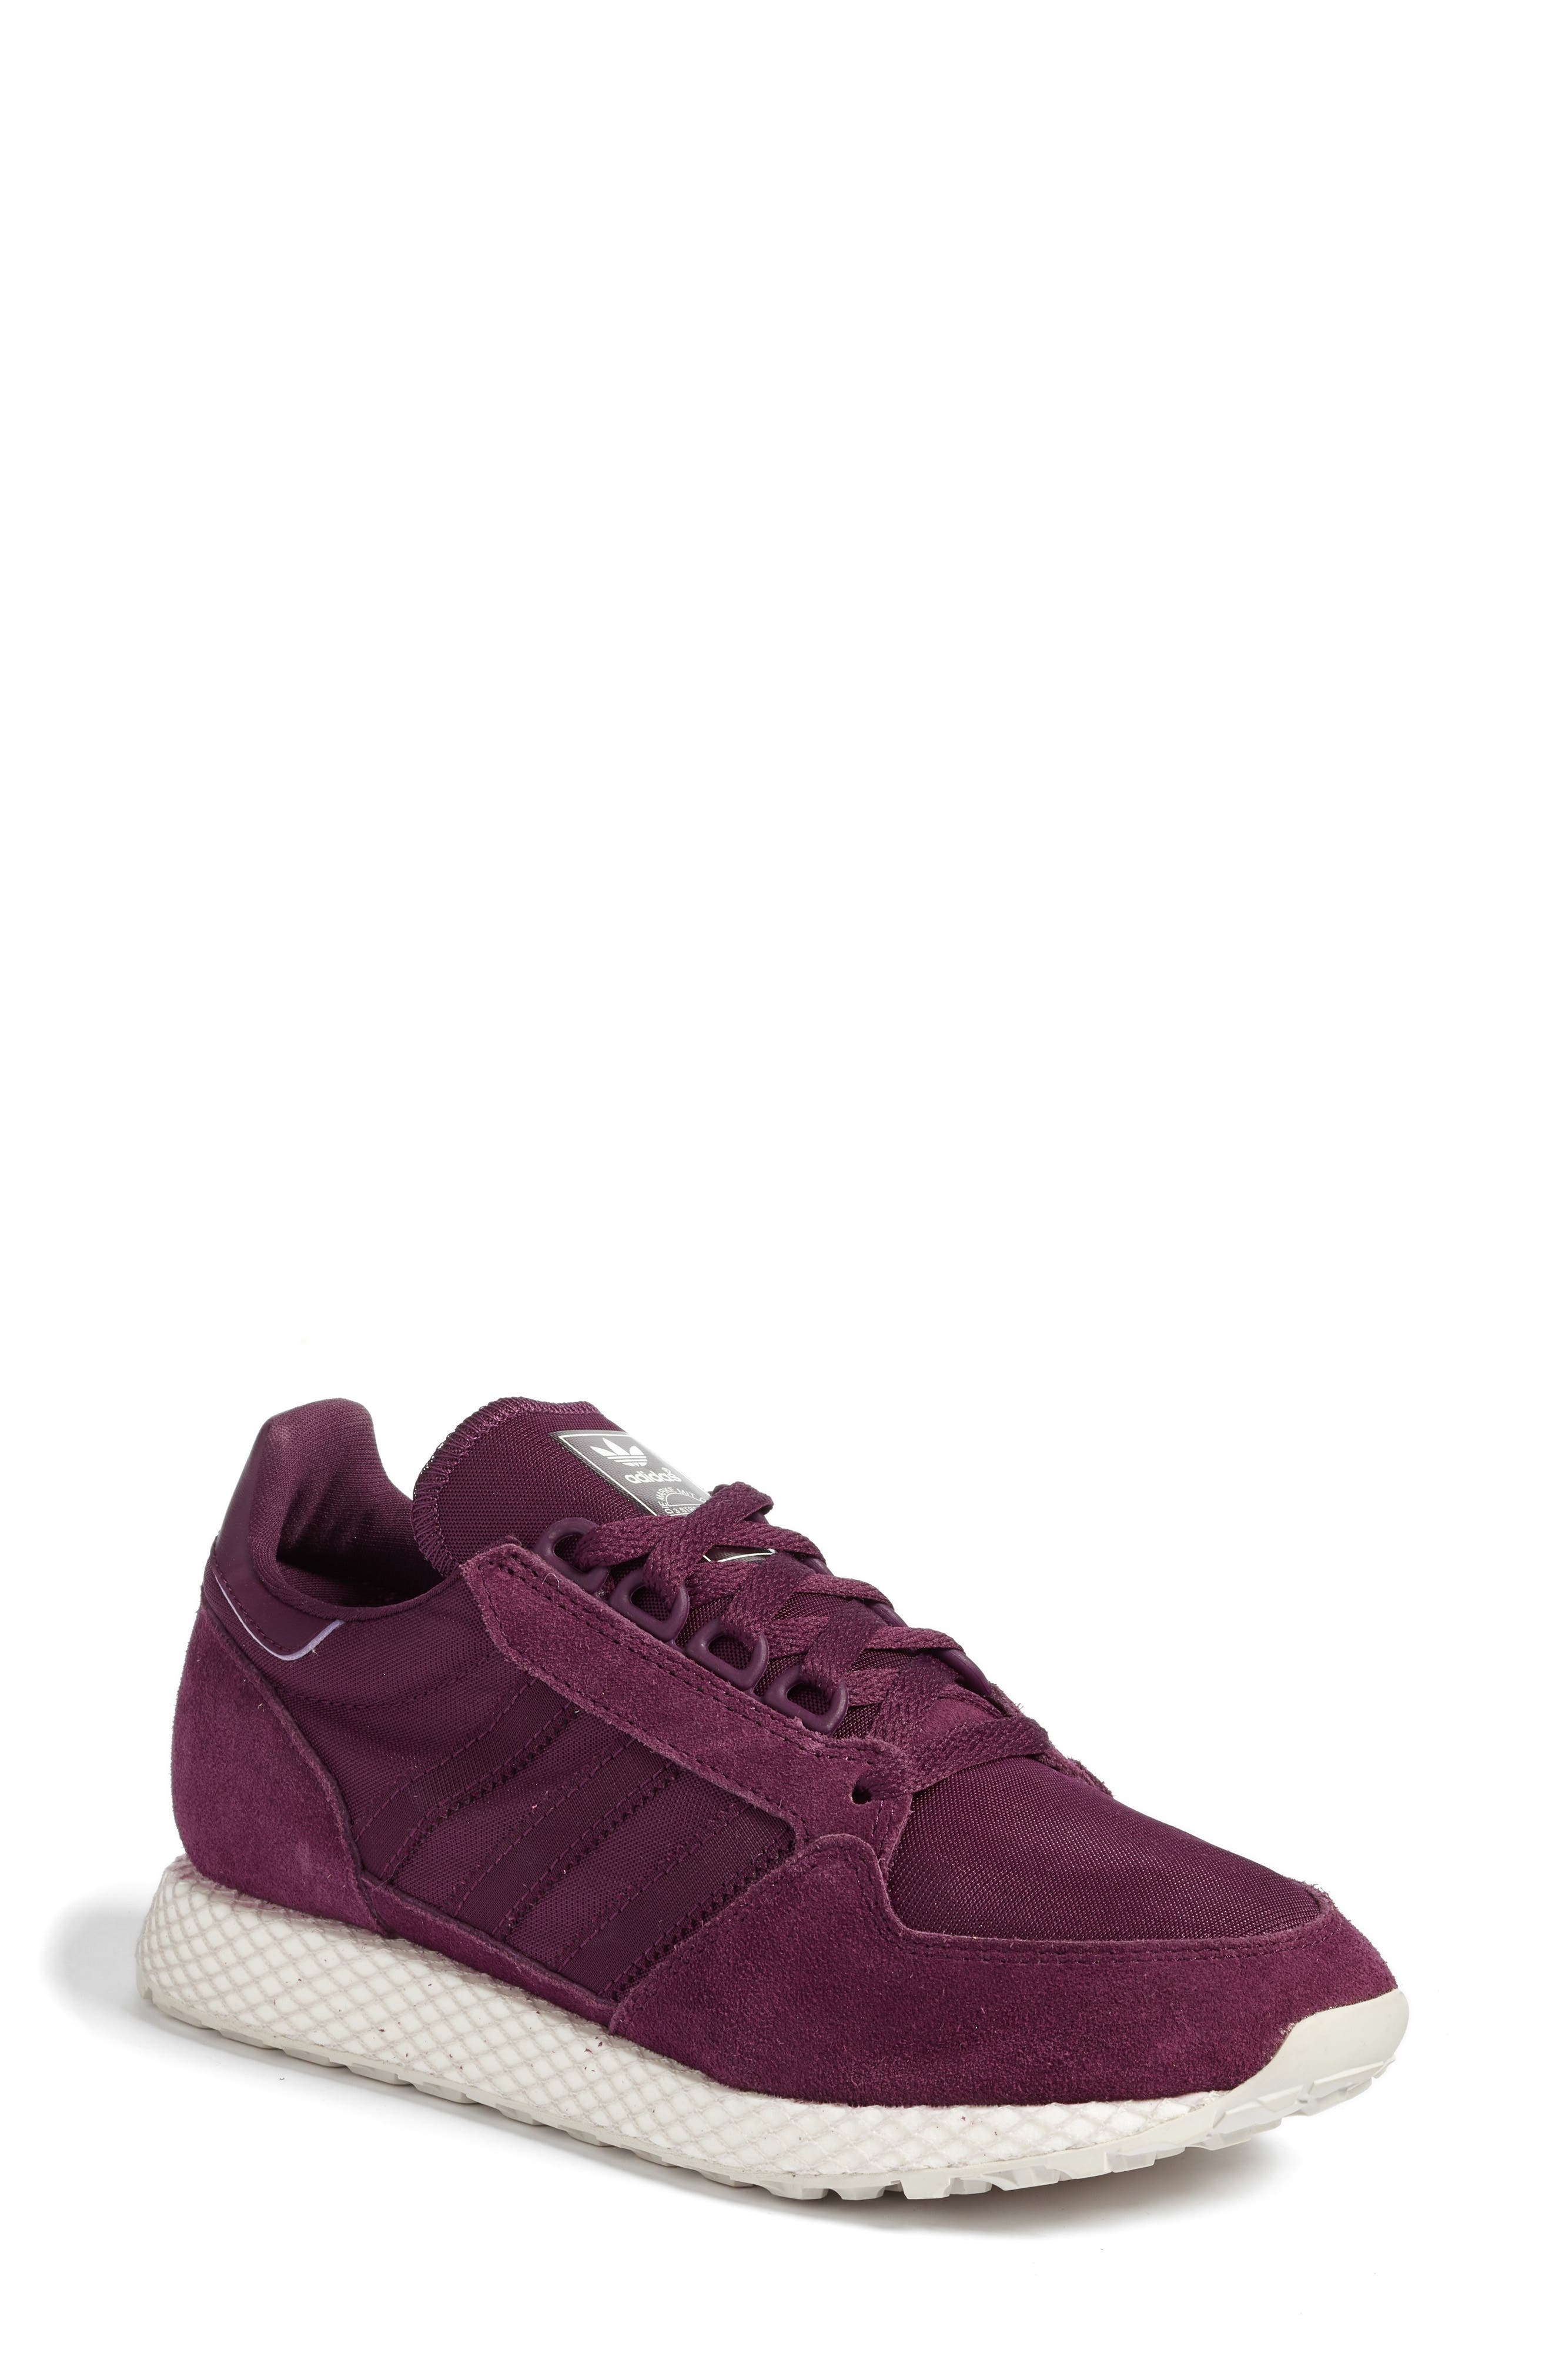 low priced 47c89 392b2 new zealand adidas forest grove sneaker women d2c04 239ea